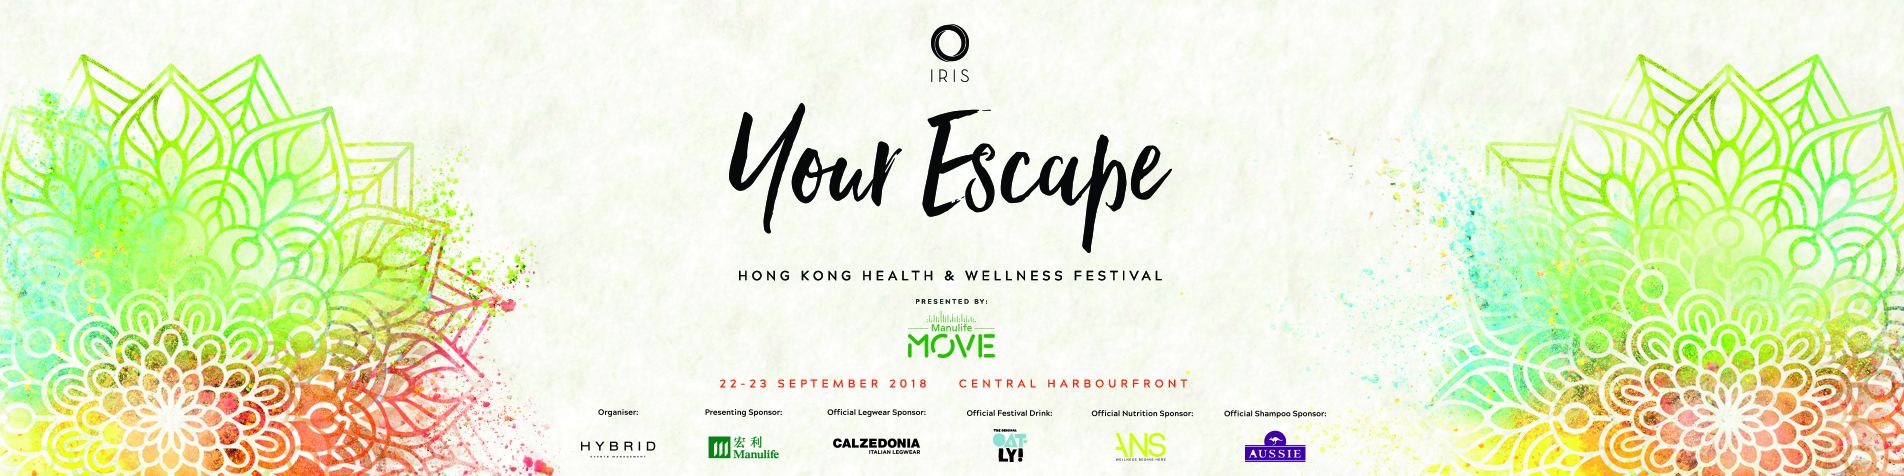 IRIS: Your Escape with ManulifeMOVE Hong Kong's Largest Health & Wellness Festival